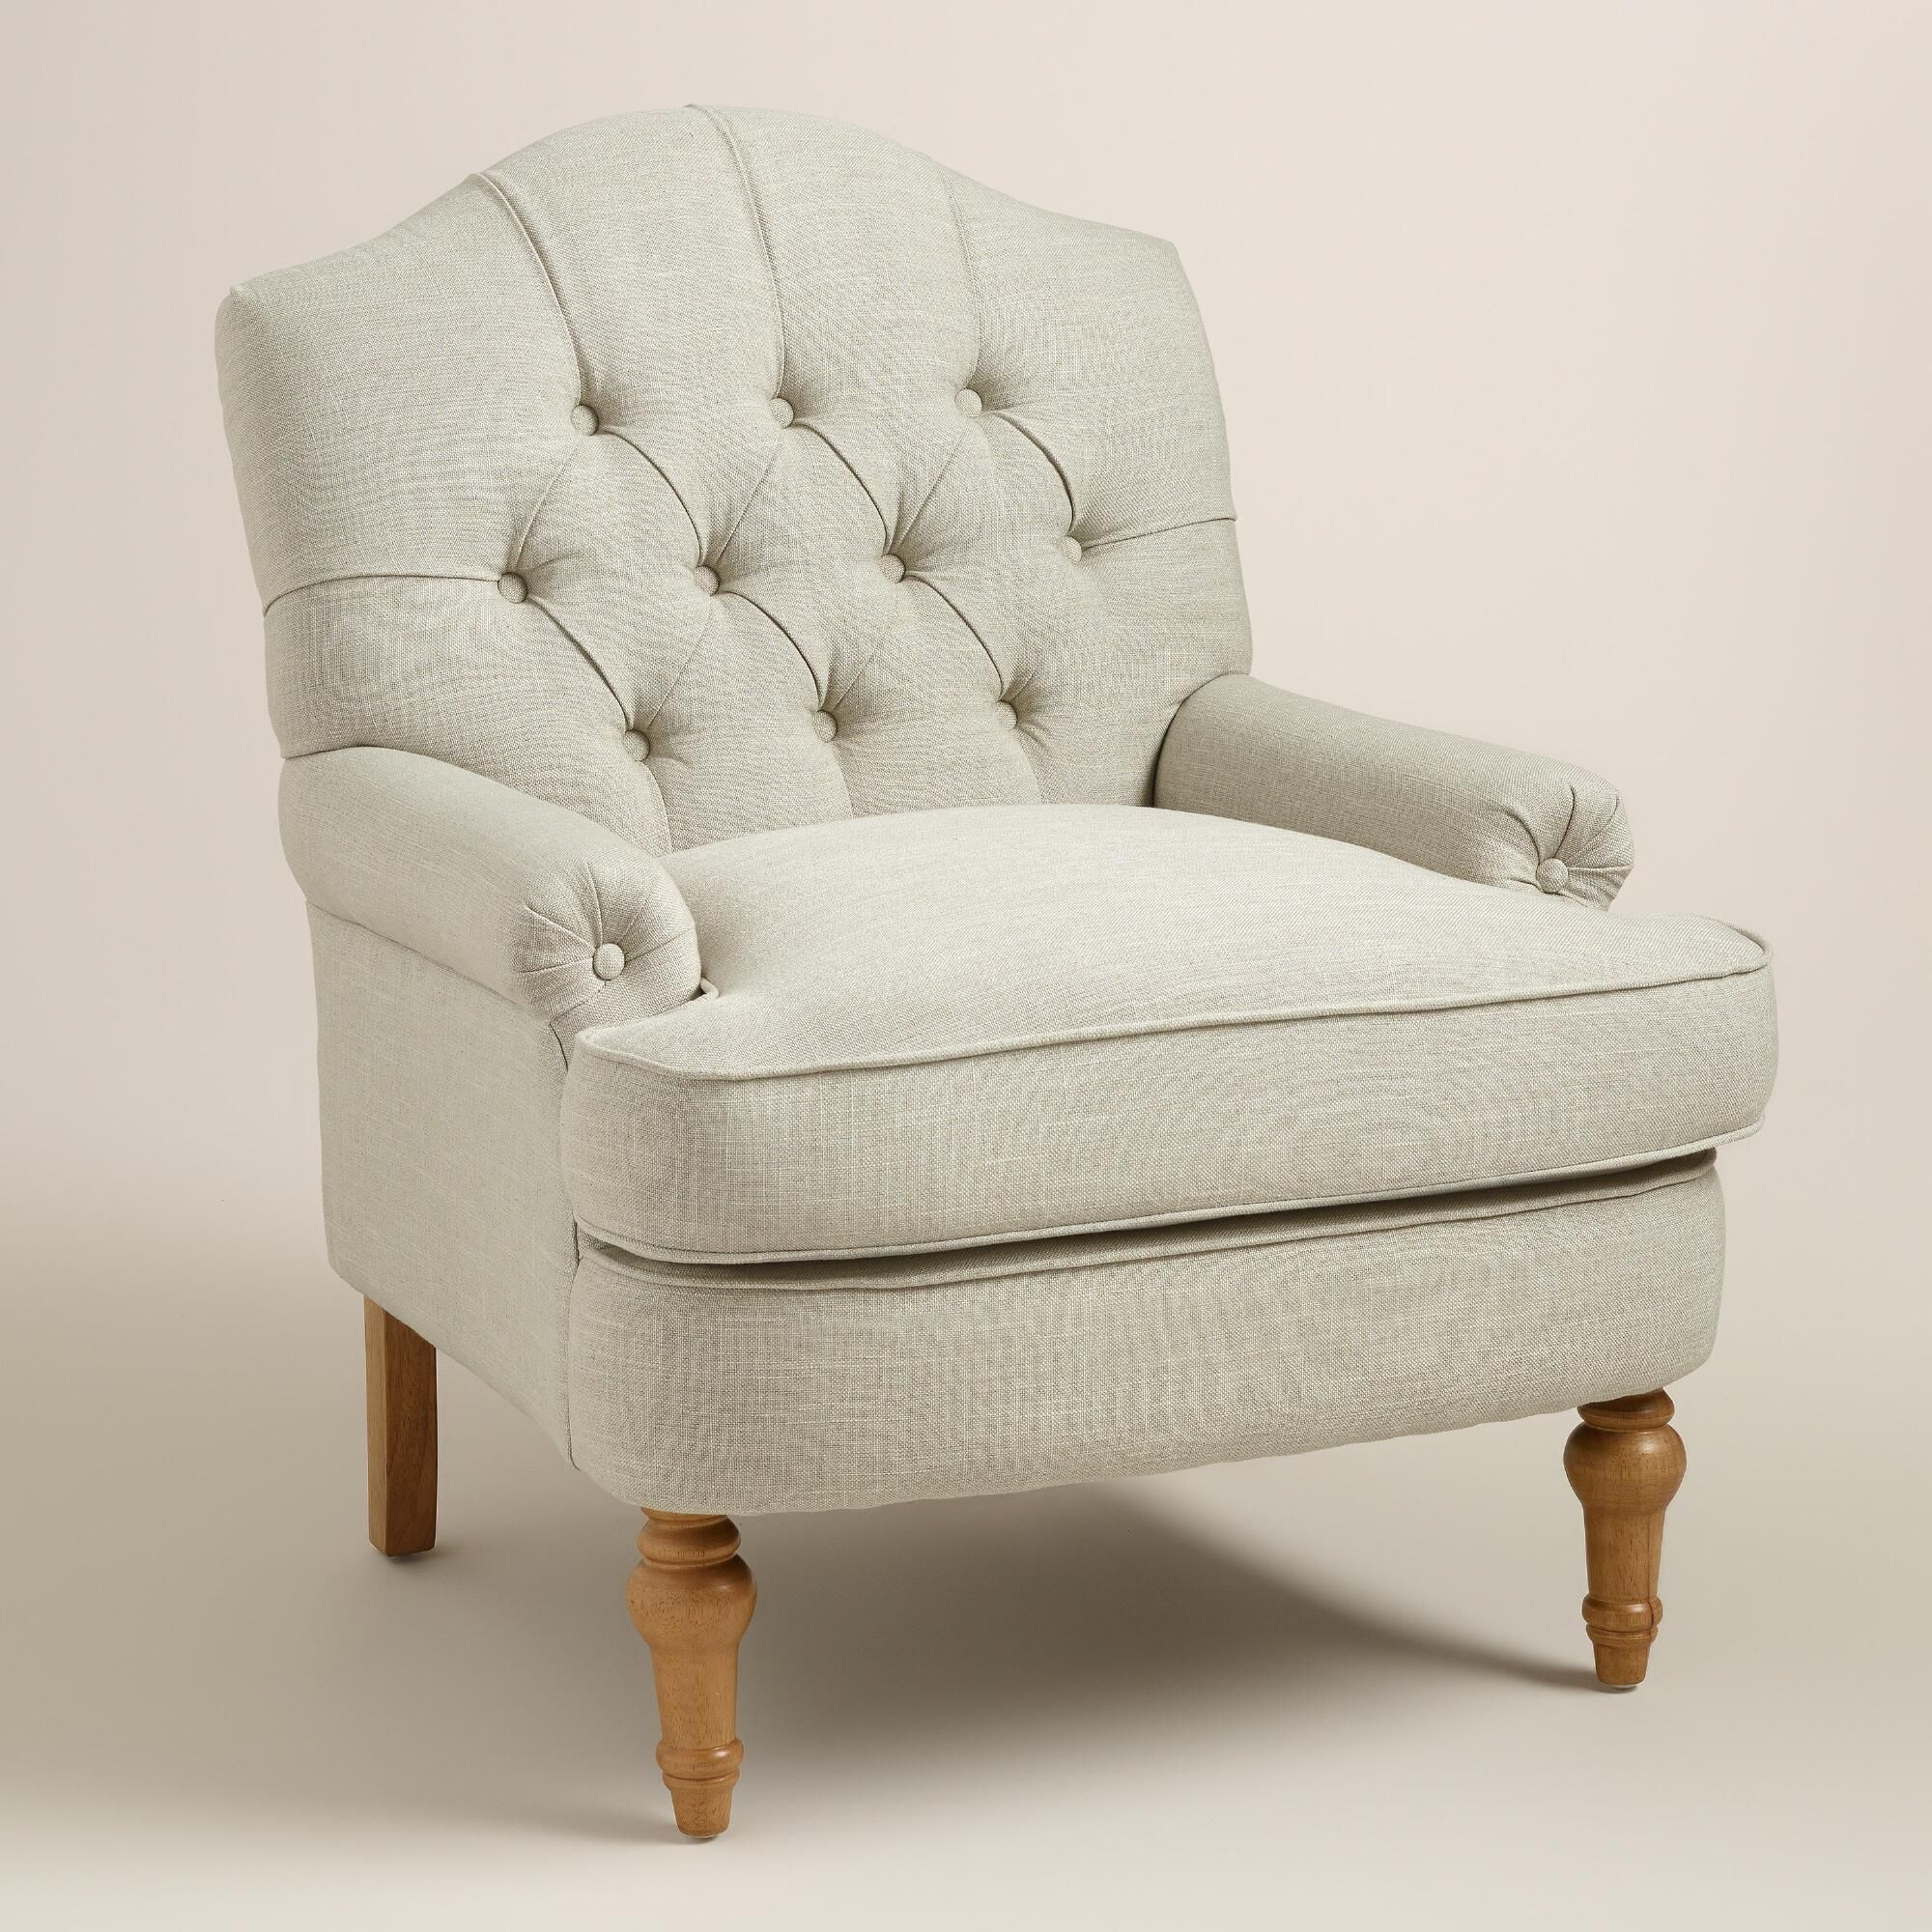 Comfy Accent Chair With Blanket: With An Arched, Tufted Back, Our Armchair Exudes A Classic